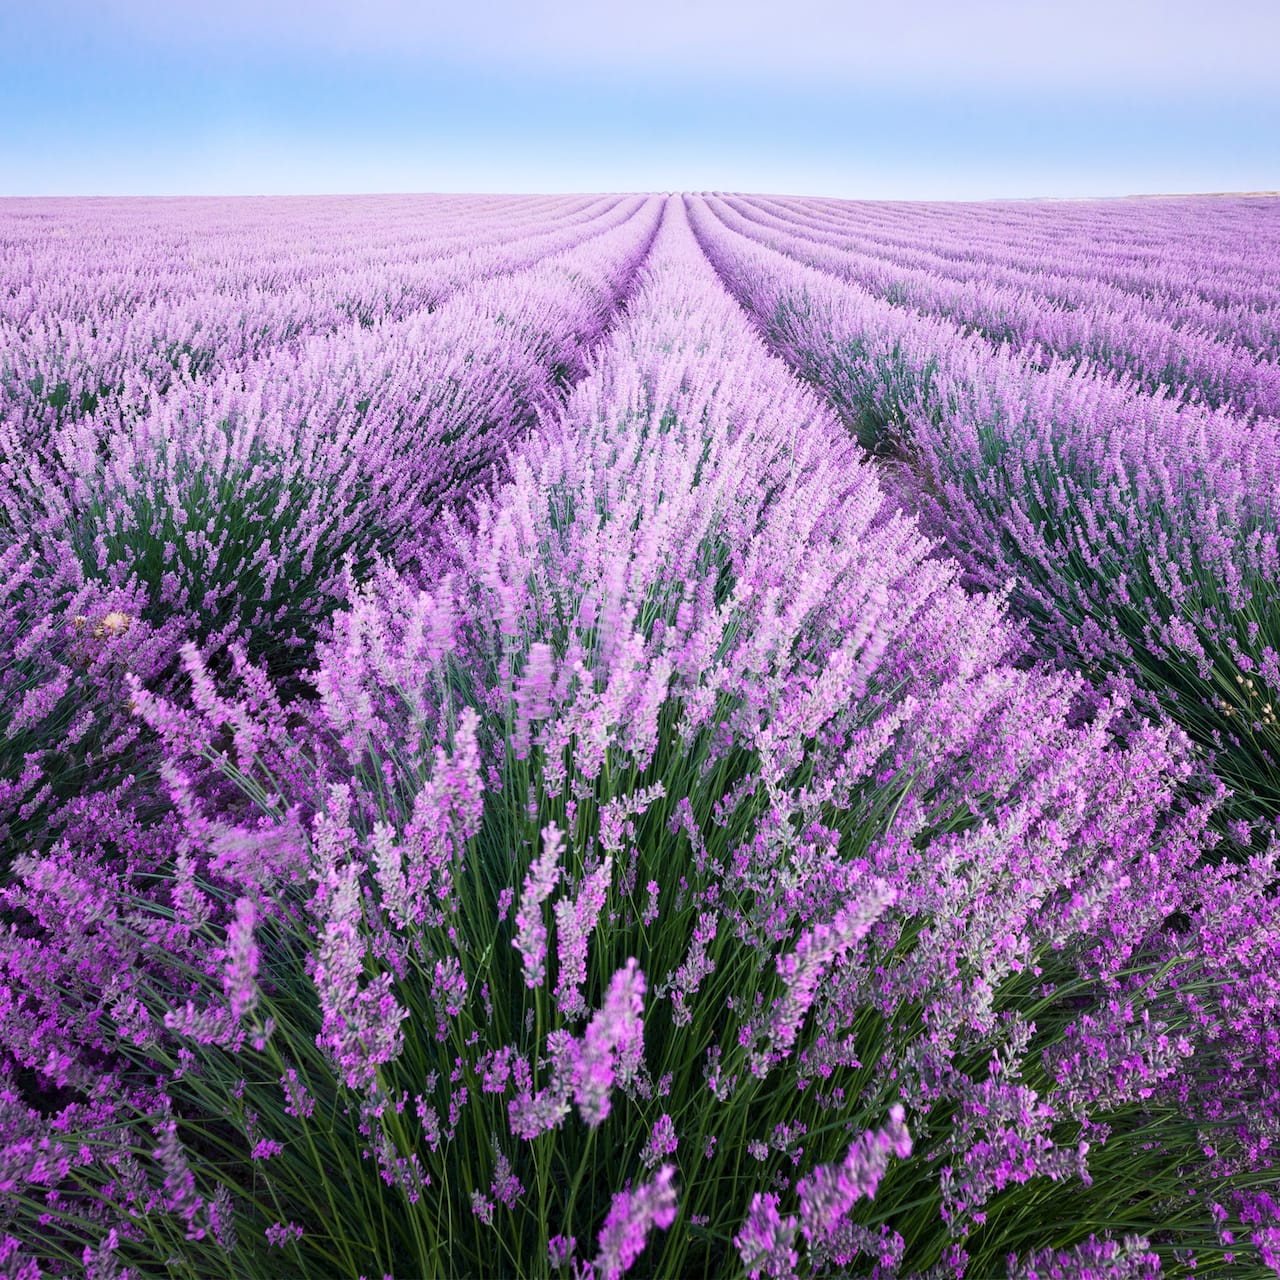 A field with rows of lavender